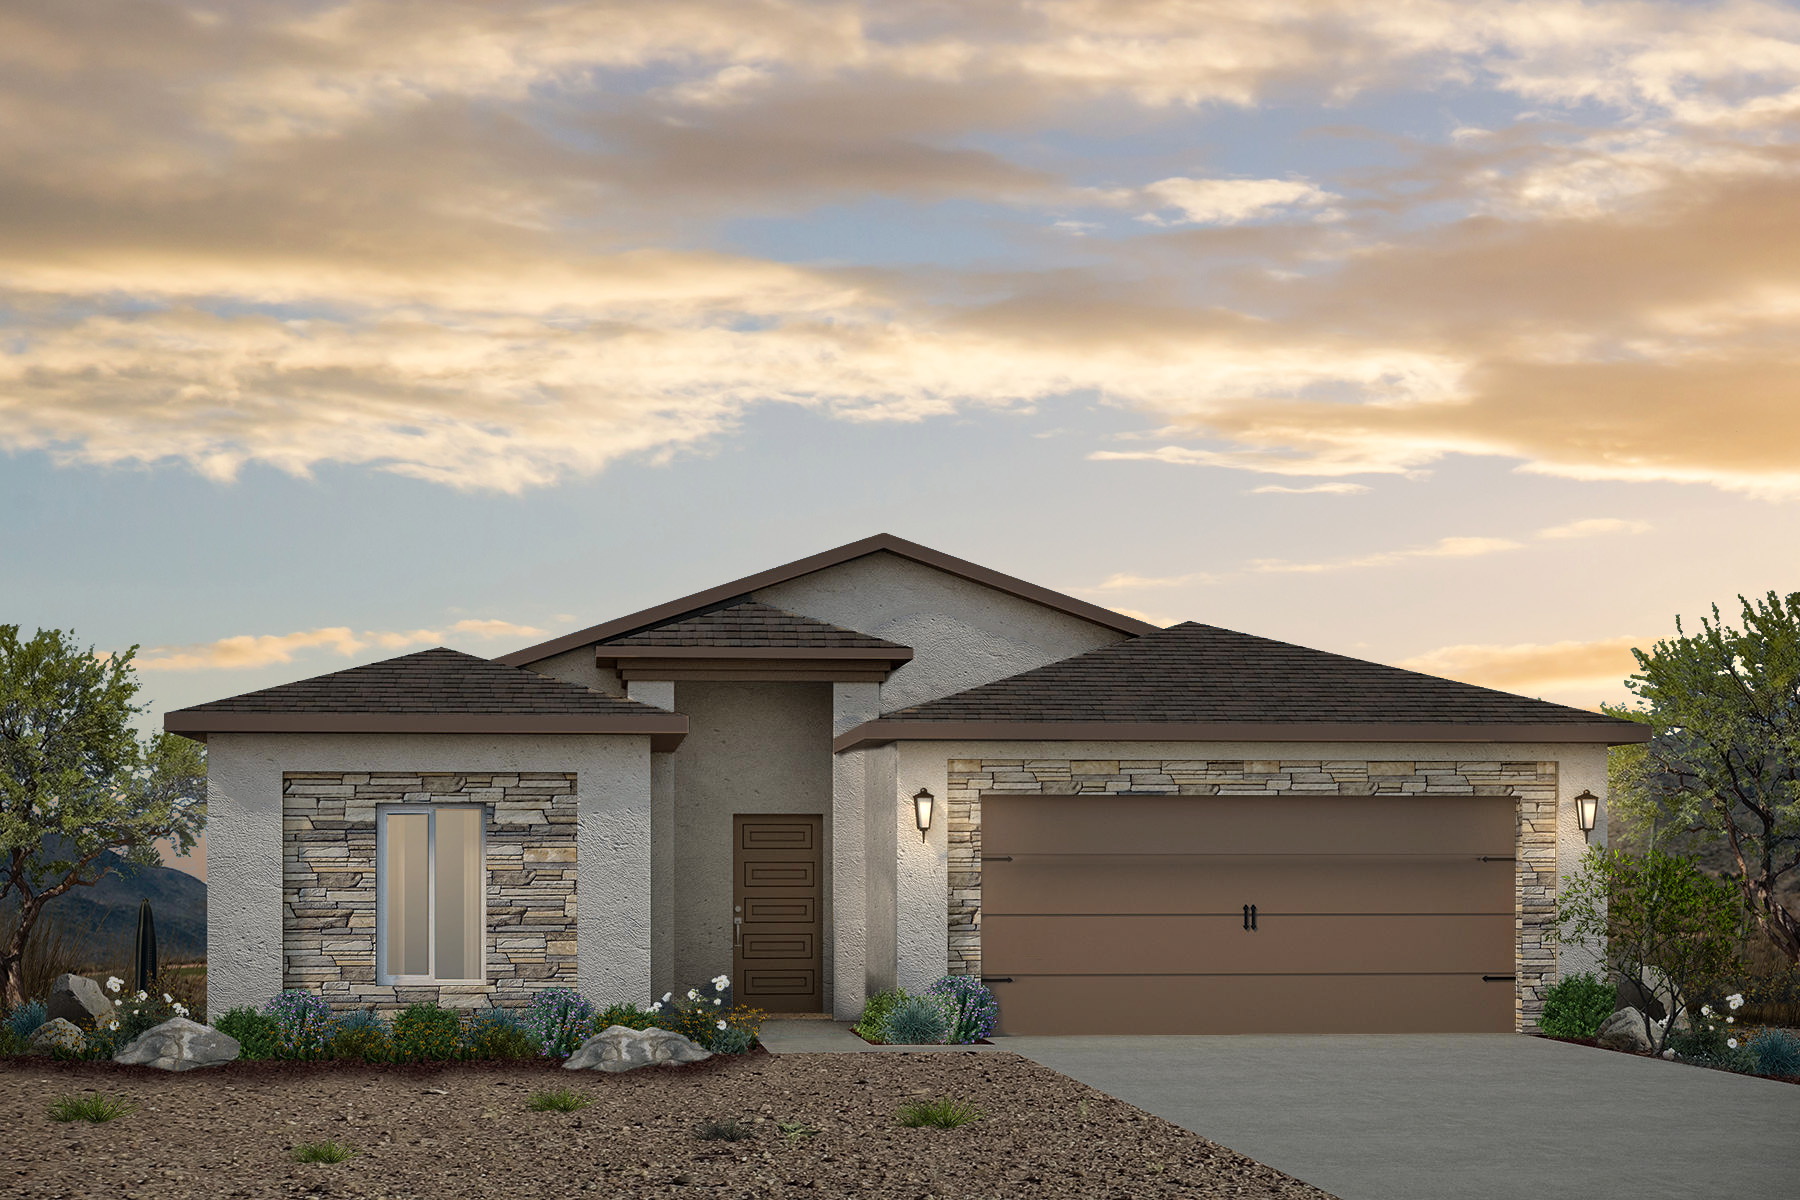 New Homes That Inspire Your Best Living